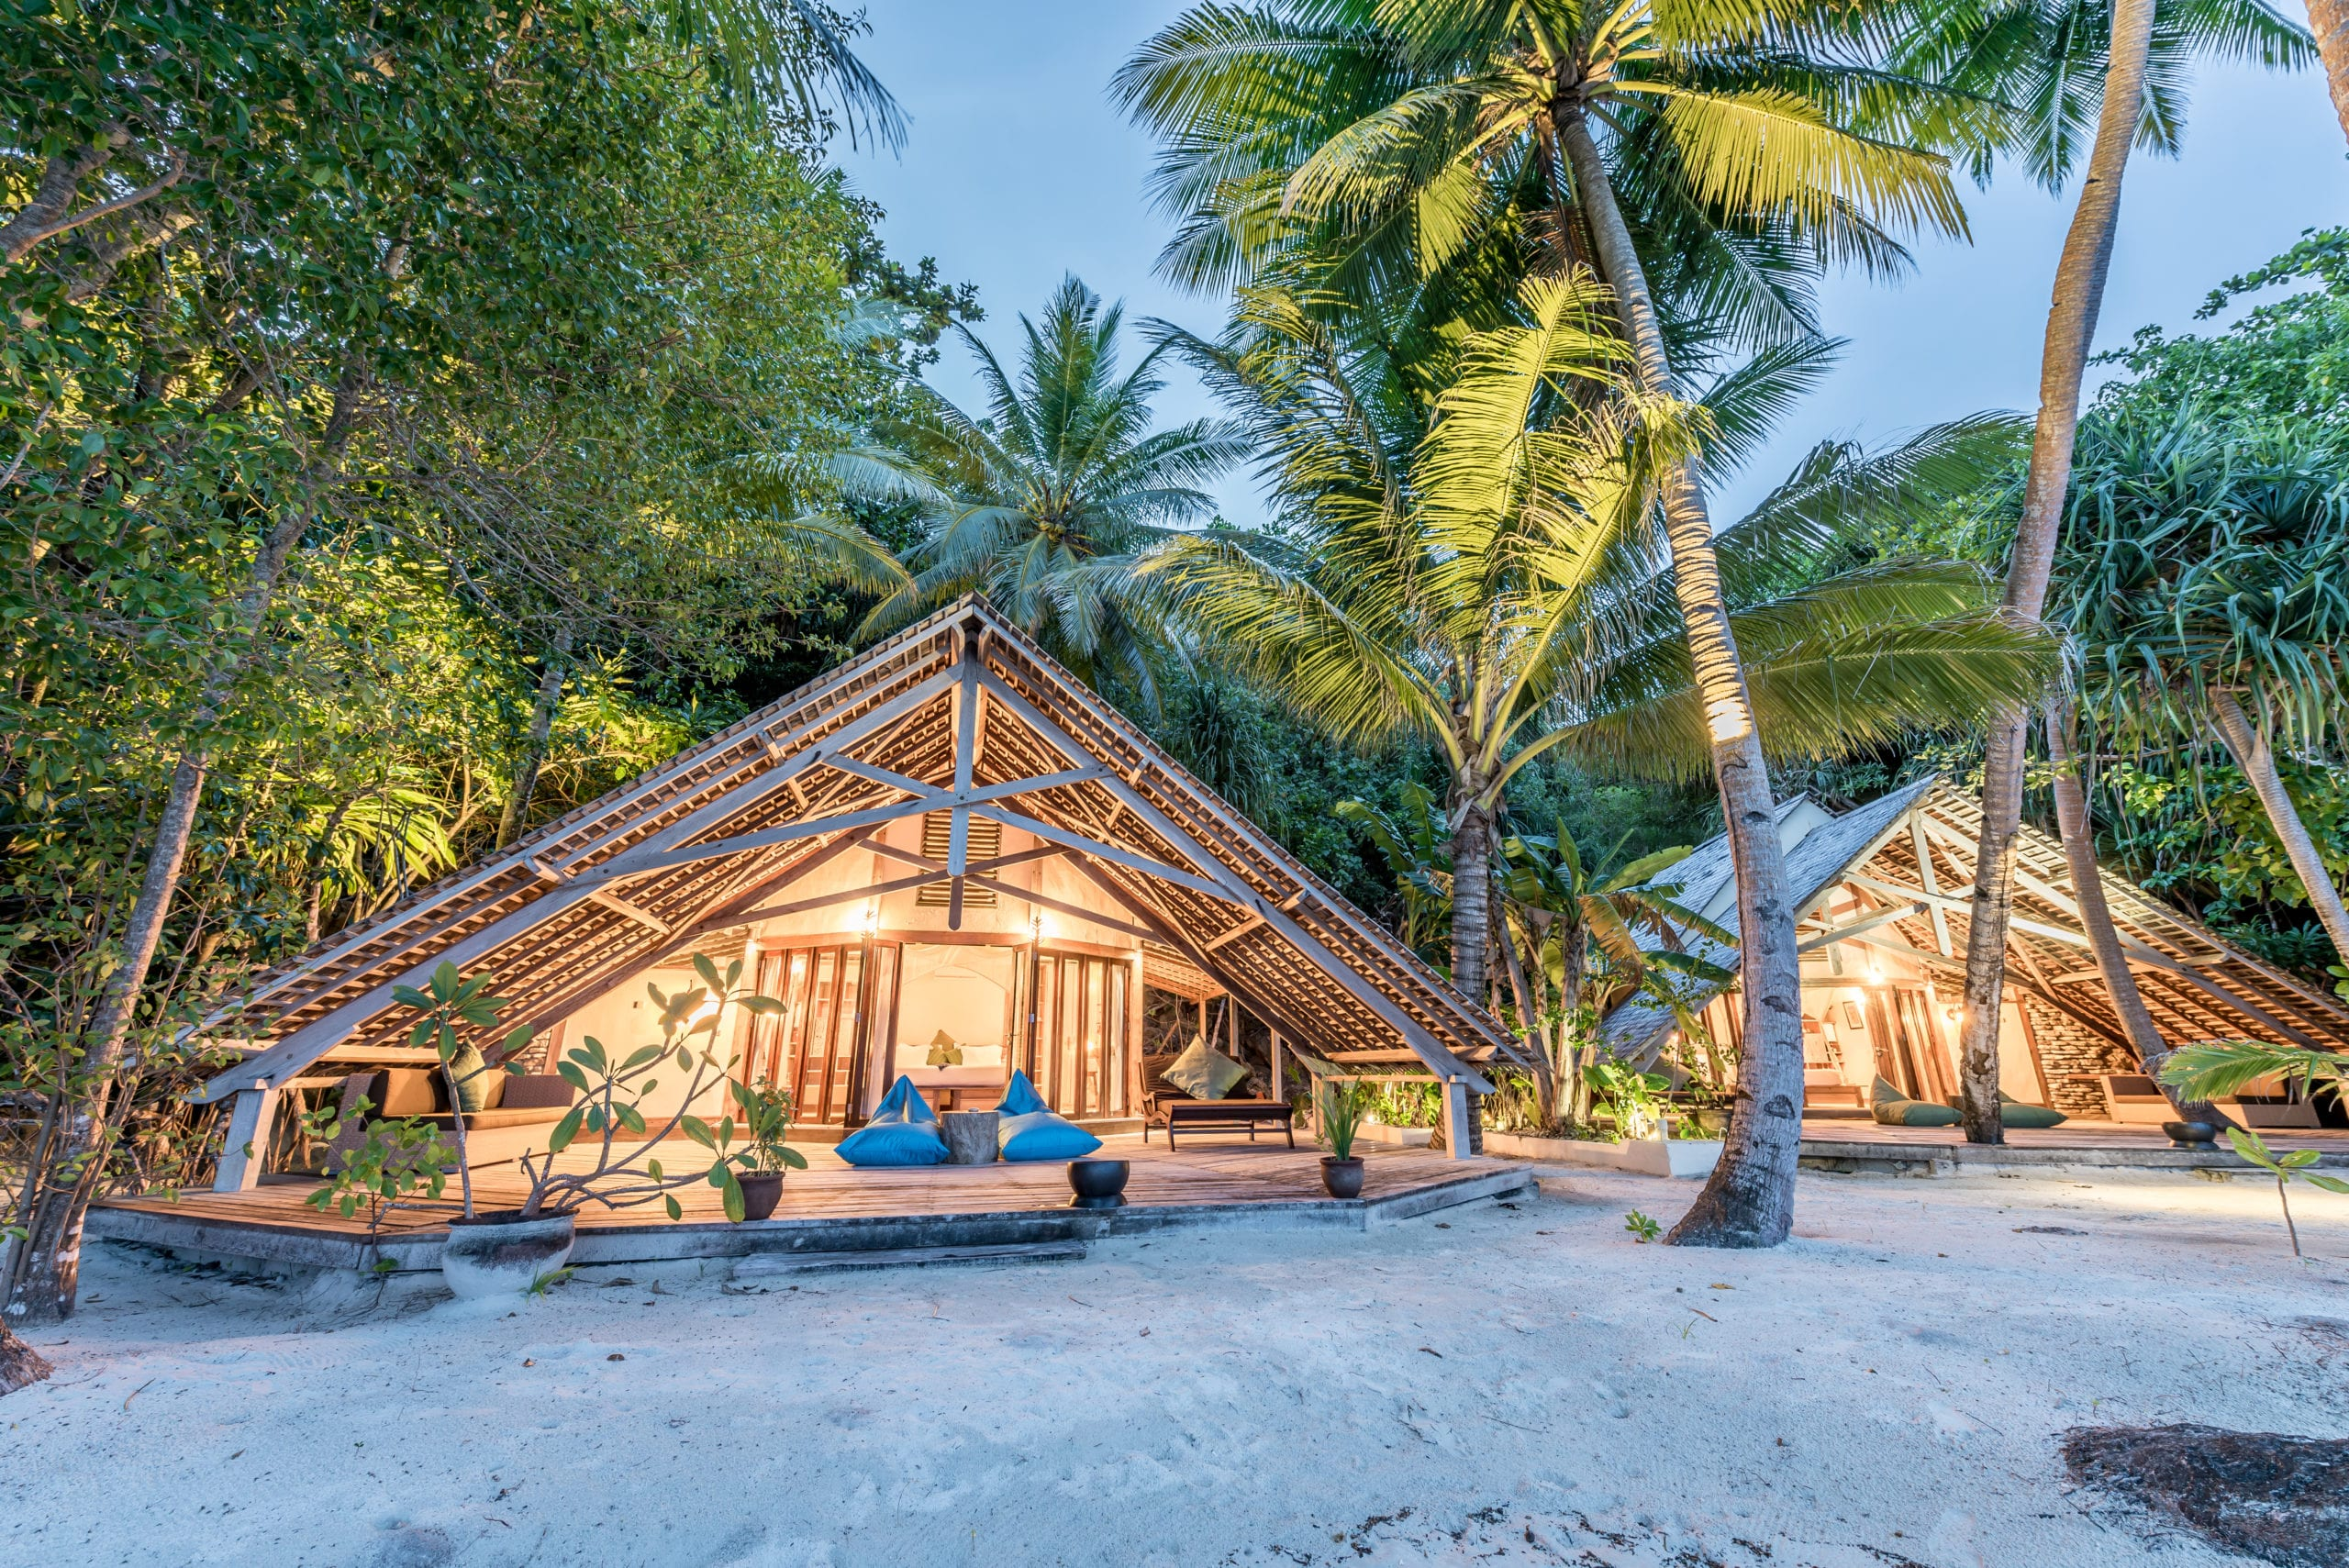 secluded beach huts on the sand